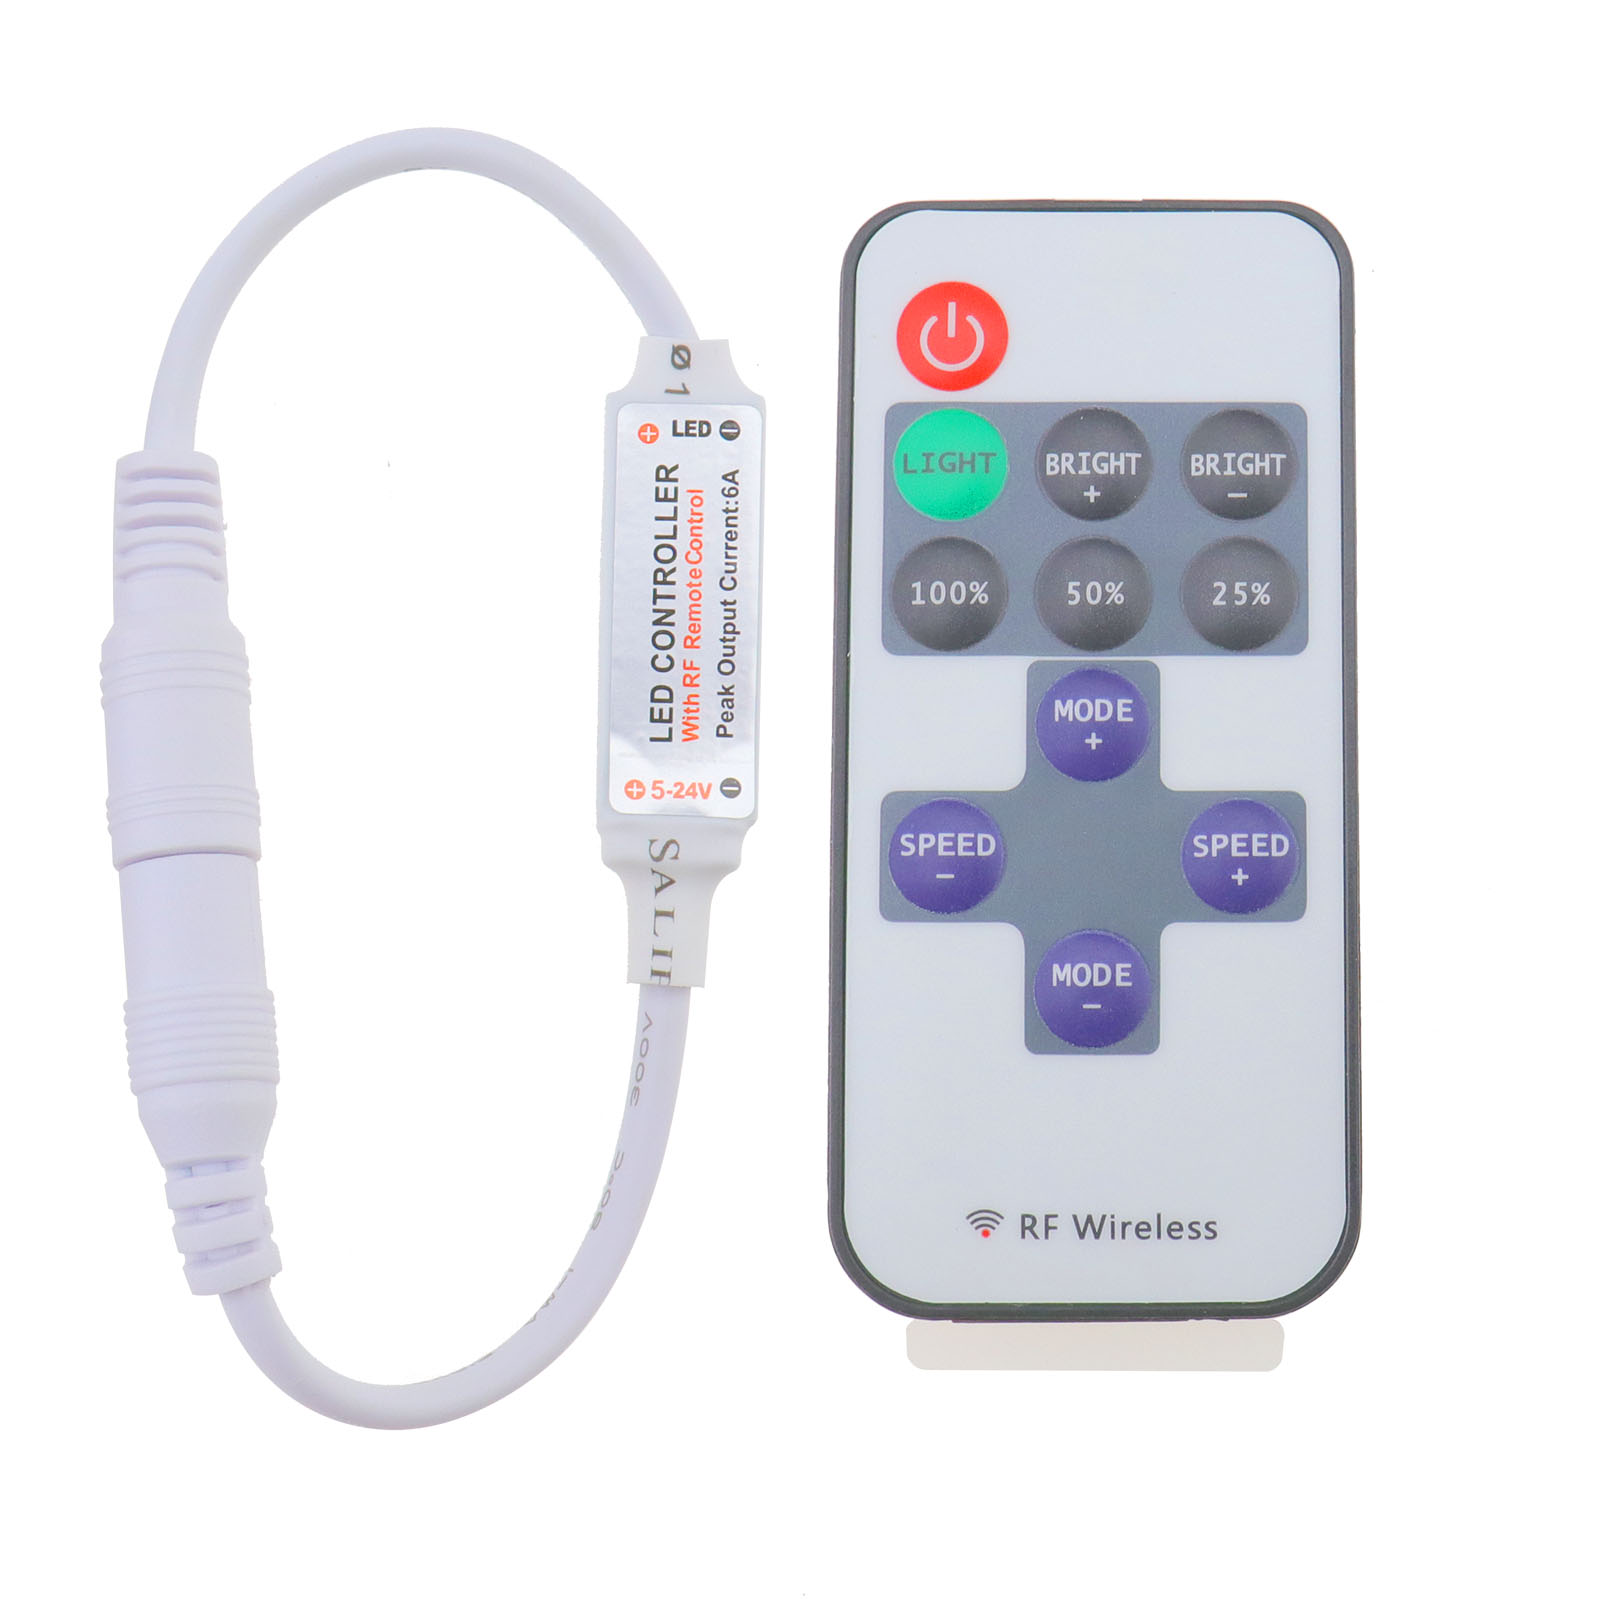 rf vhome switch shape for launcher black touch light wireless control pin remote